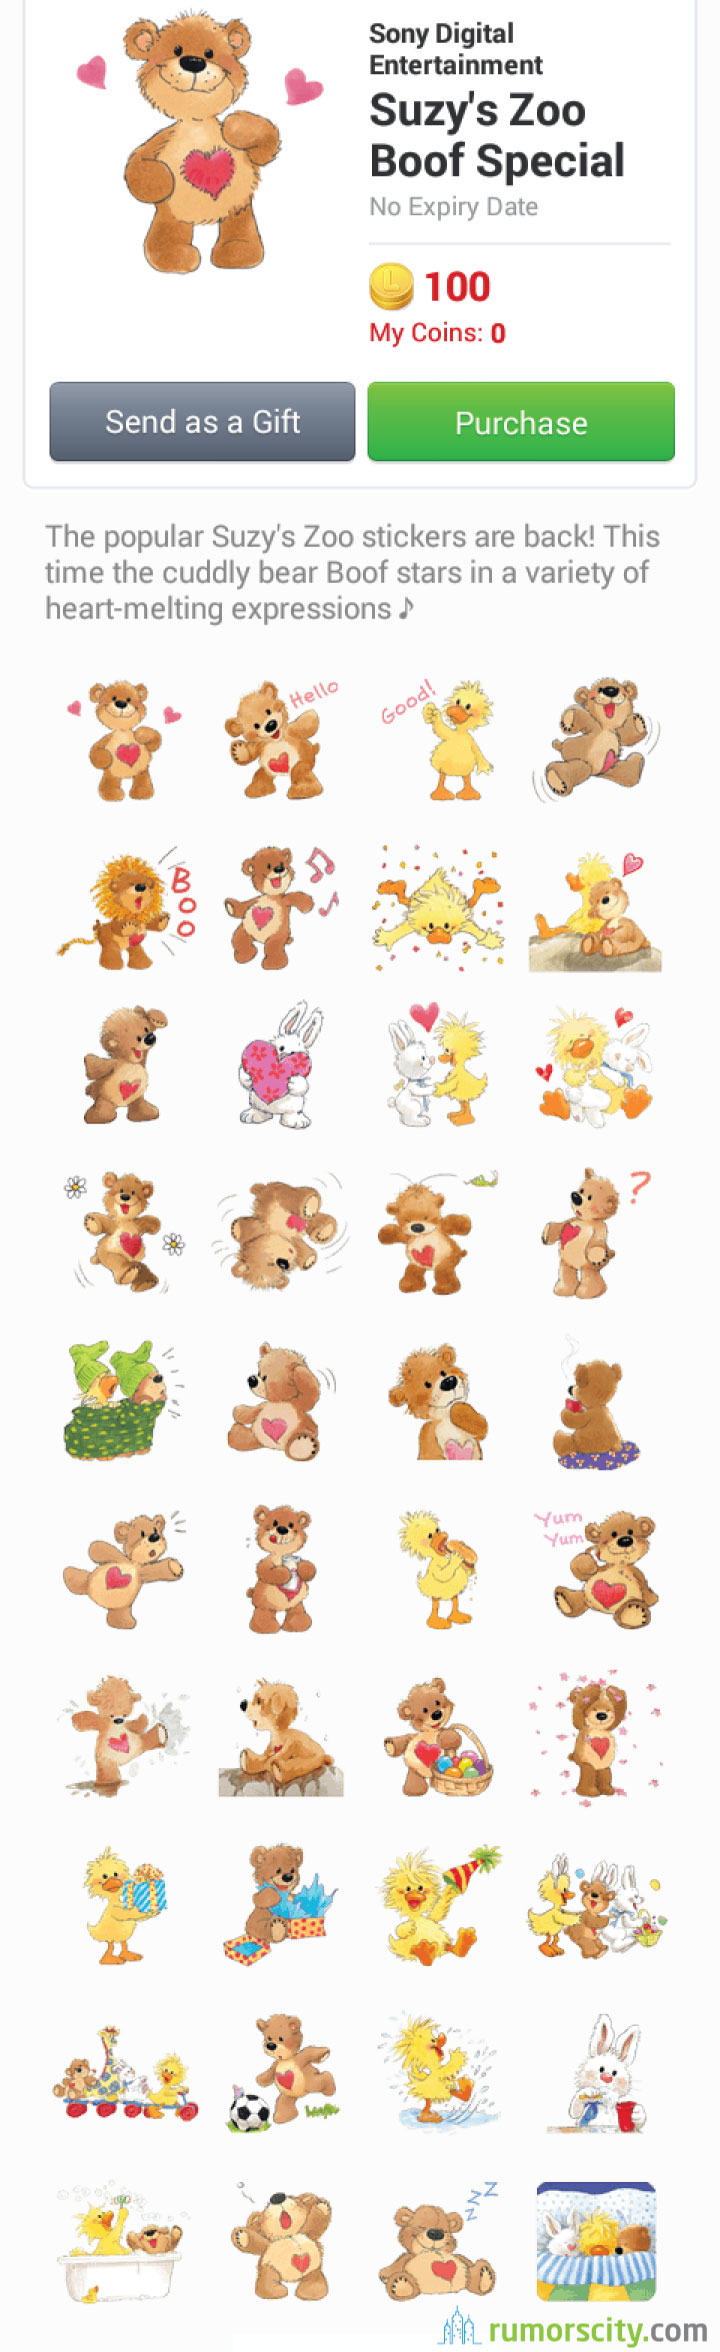 Suzys-Zoo-Boof-Special-Line-sticker-in-Japan-Paid-02